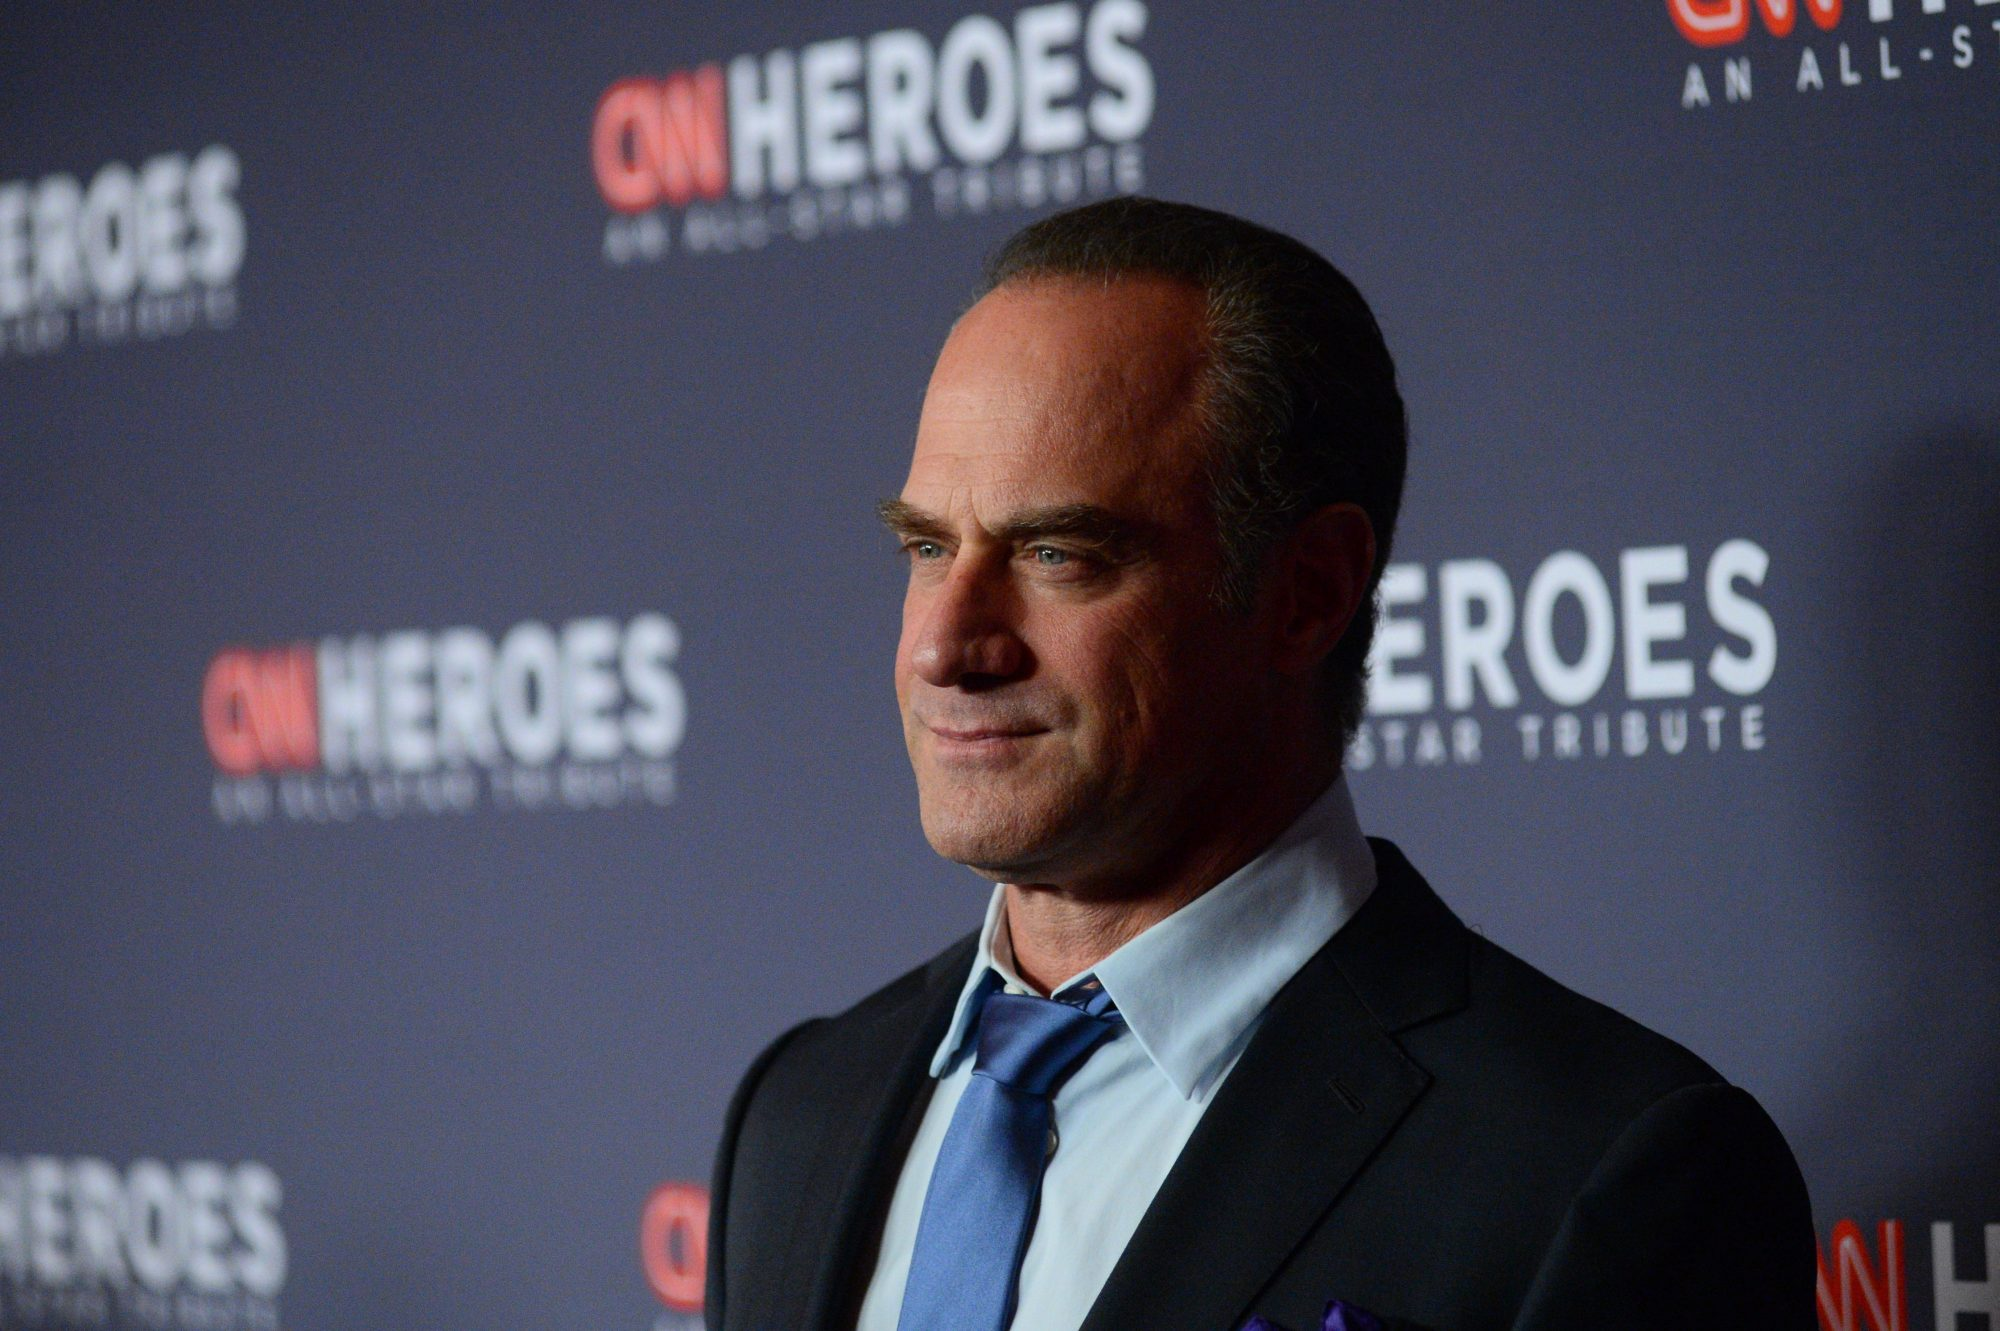 Elliot Stabler 'Law & Order: SVU' Spinoff With Christopher Meloni Set at NBC